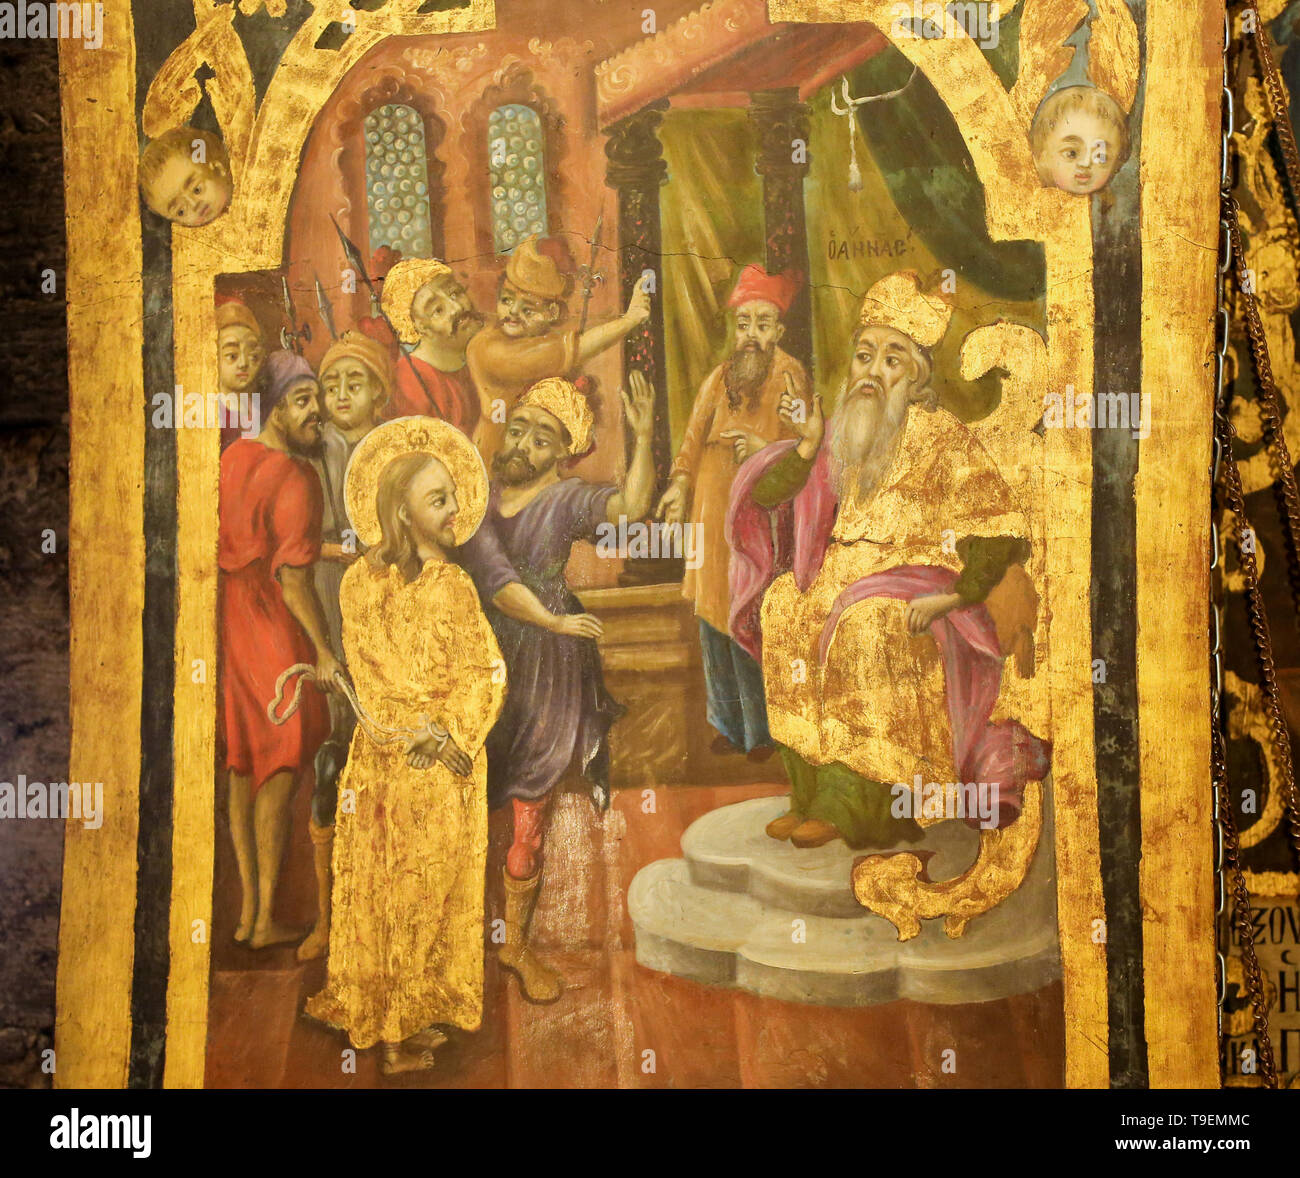 Greek Orthodox Fresco in the Church of the Holy Sepulchre in Jerusalem, depicting Jesus about to be struck in front of former High Priest Annas, as in - Stock Image